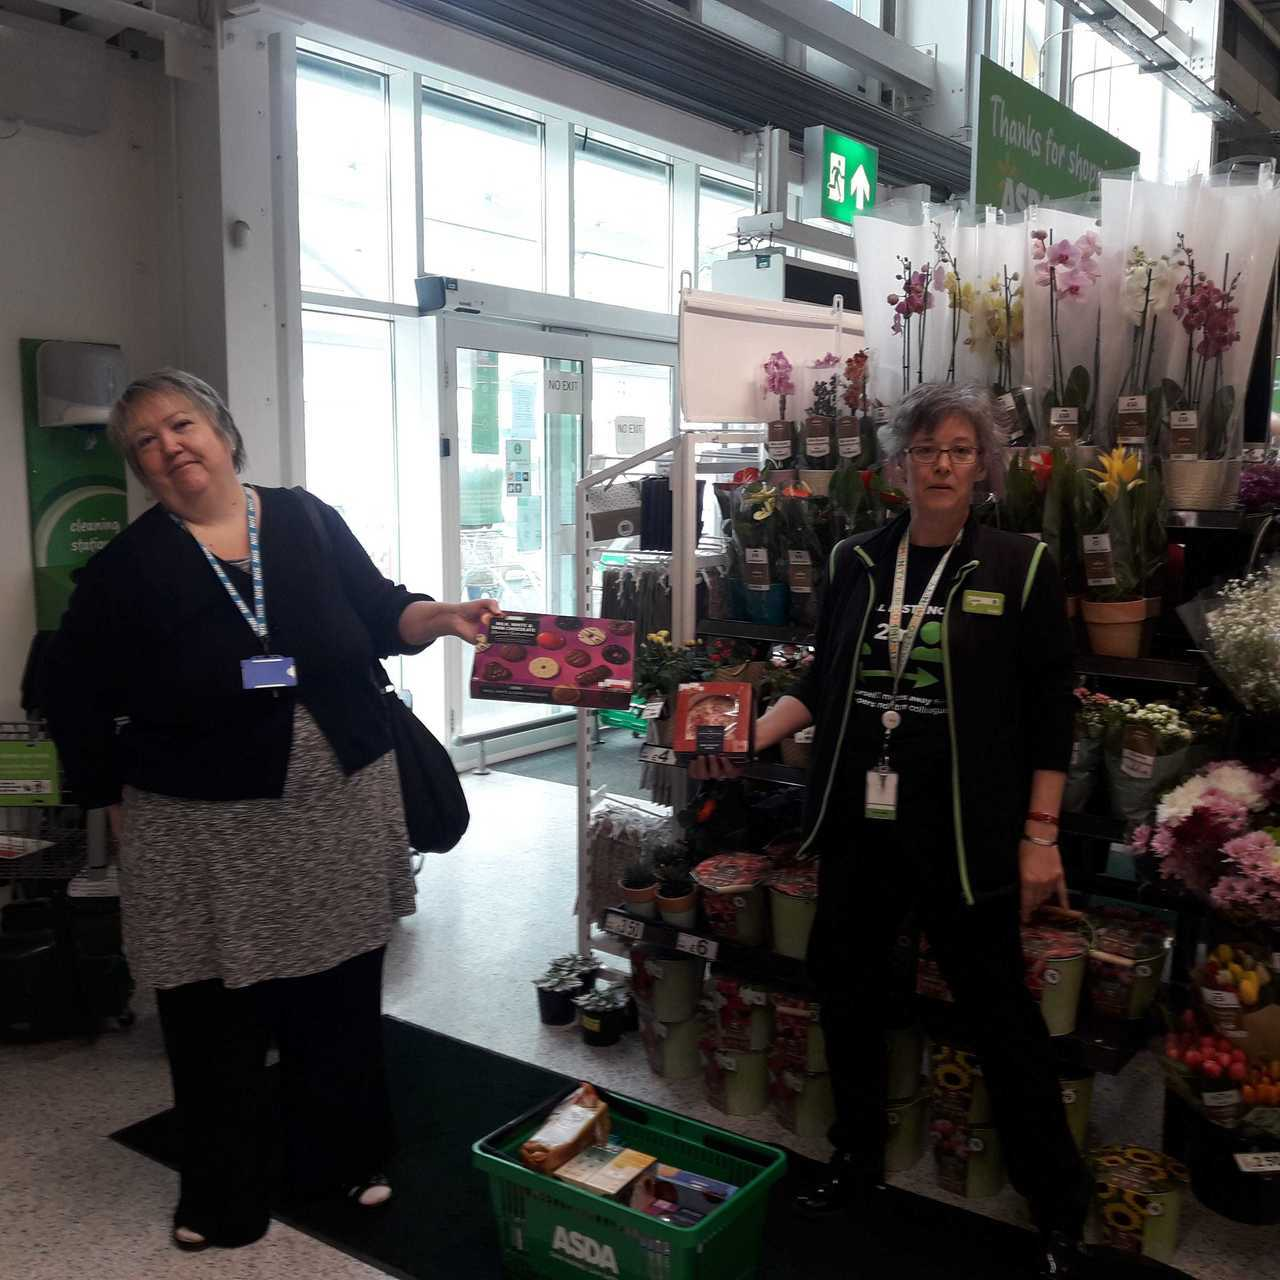 Donation to surgery | Asda Rawtenstall